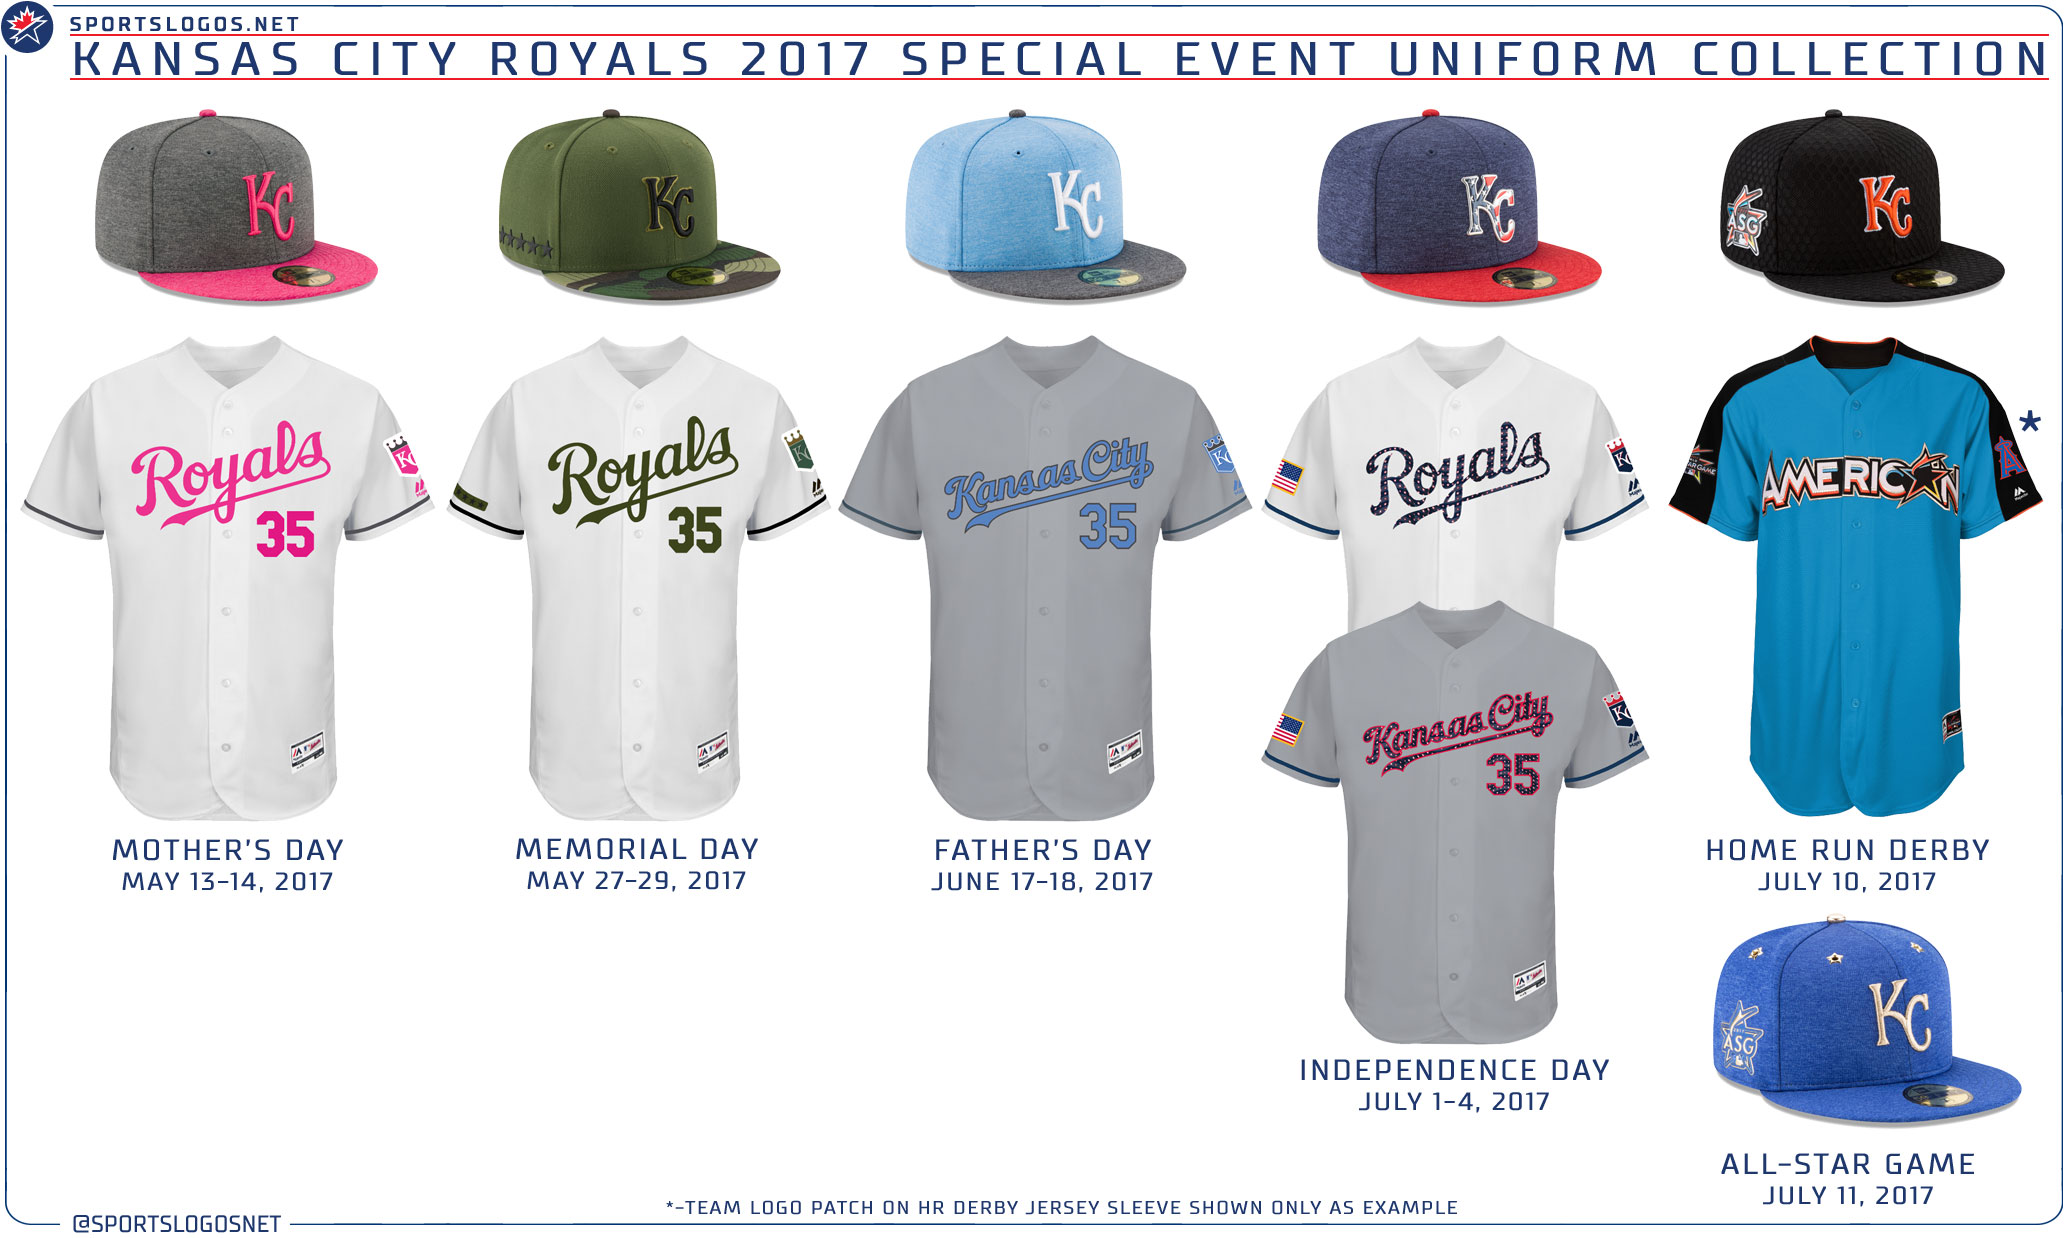 Kansas-City-Royals-2017-Special-Event-Uniforms